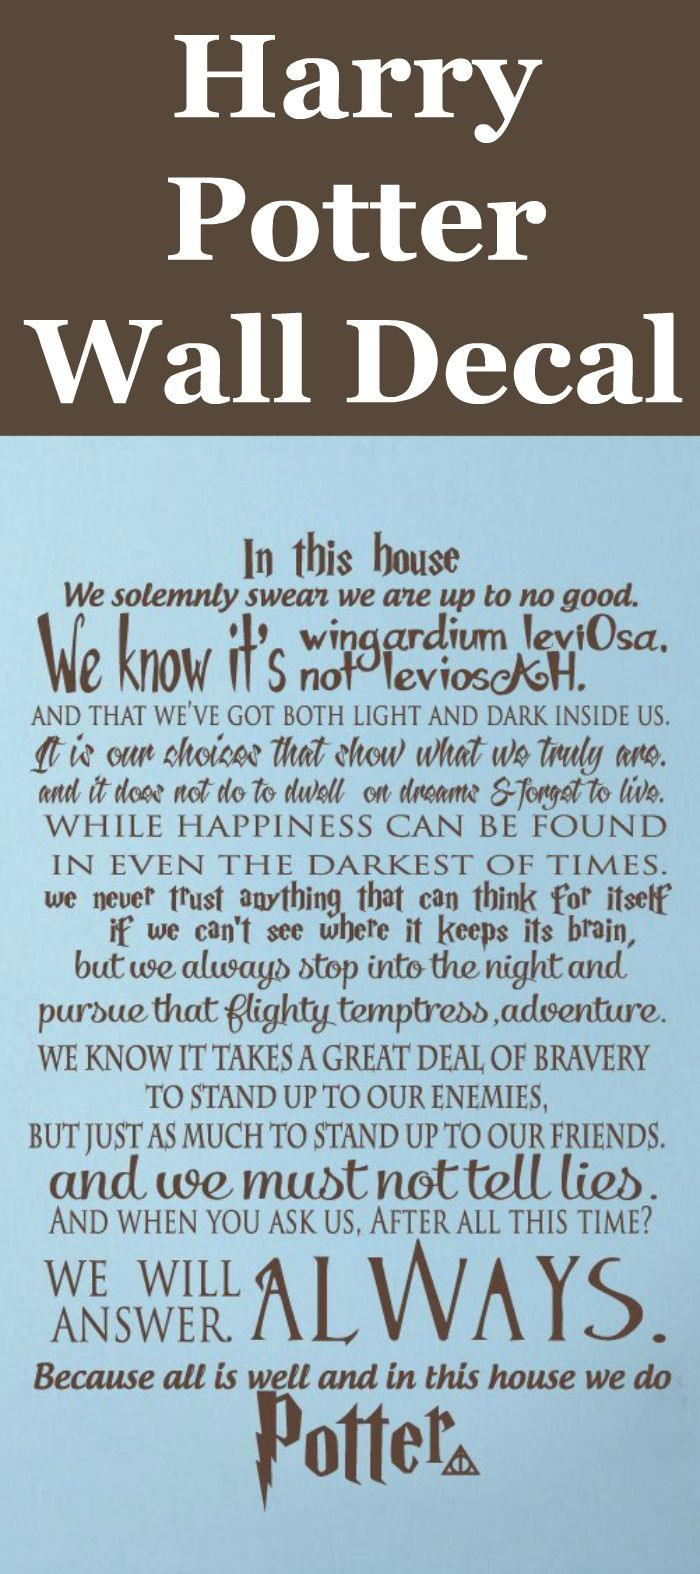 Always. That's what I think when I see this Harry Potter vinyl wall decal. In this house we do Potter.